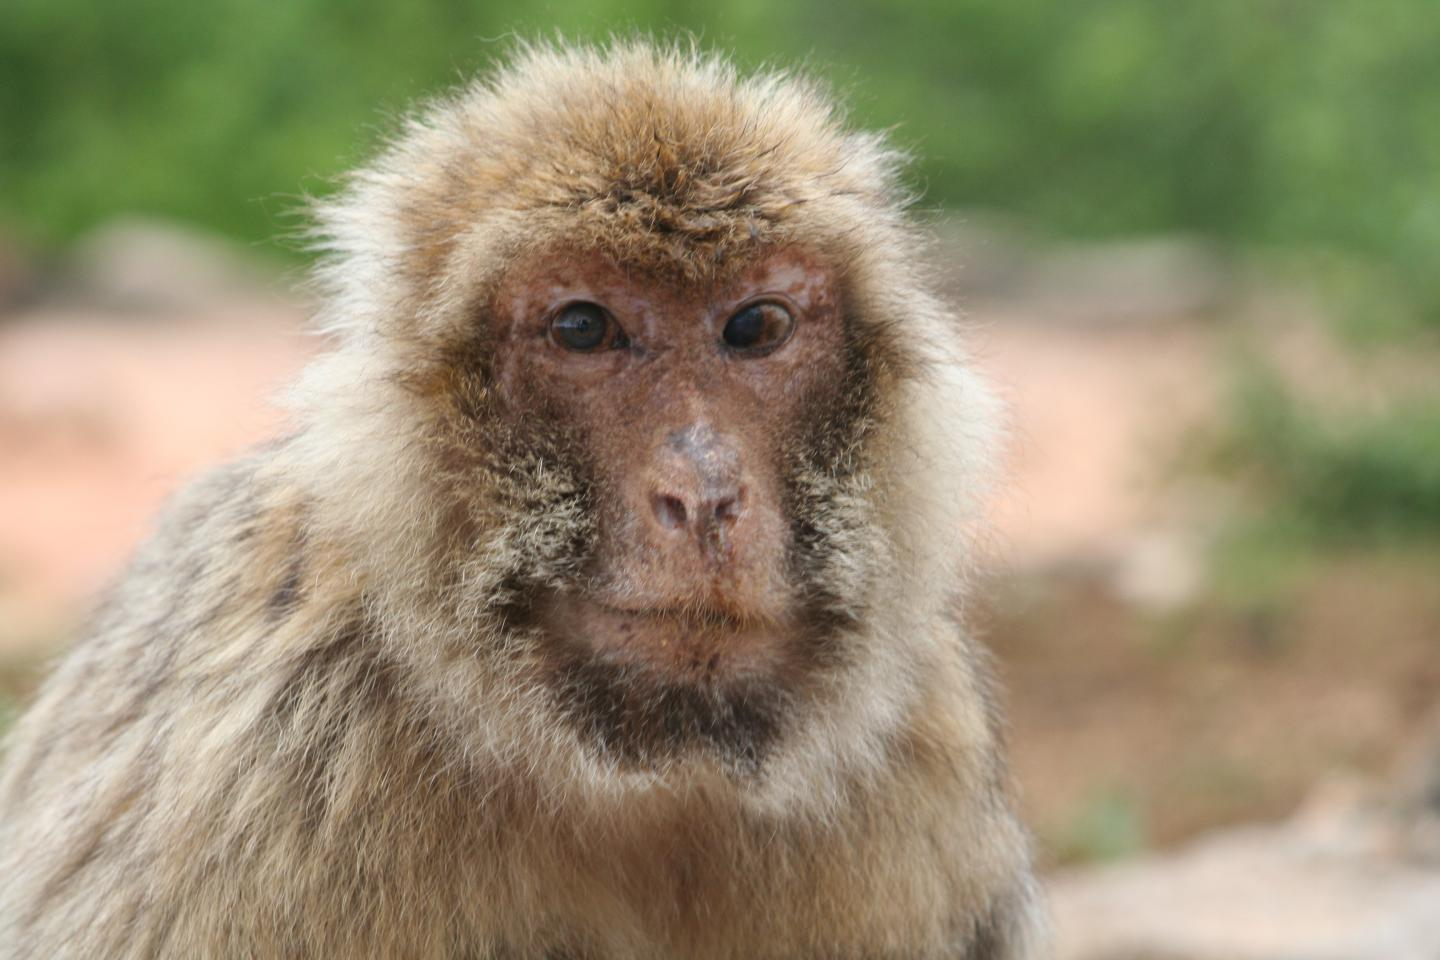 macaque social interactions